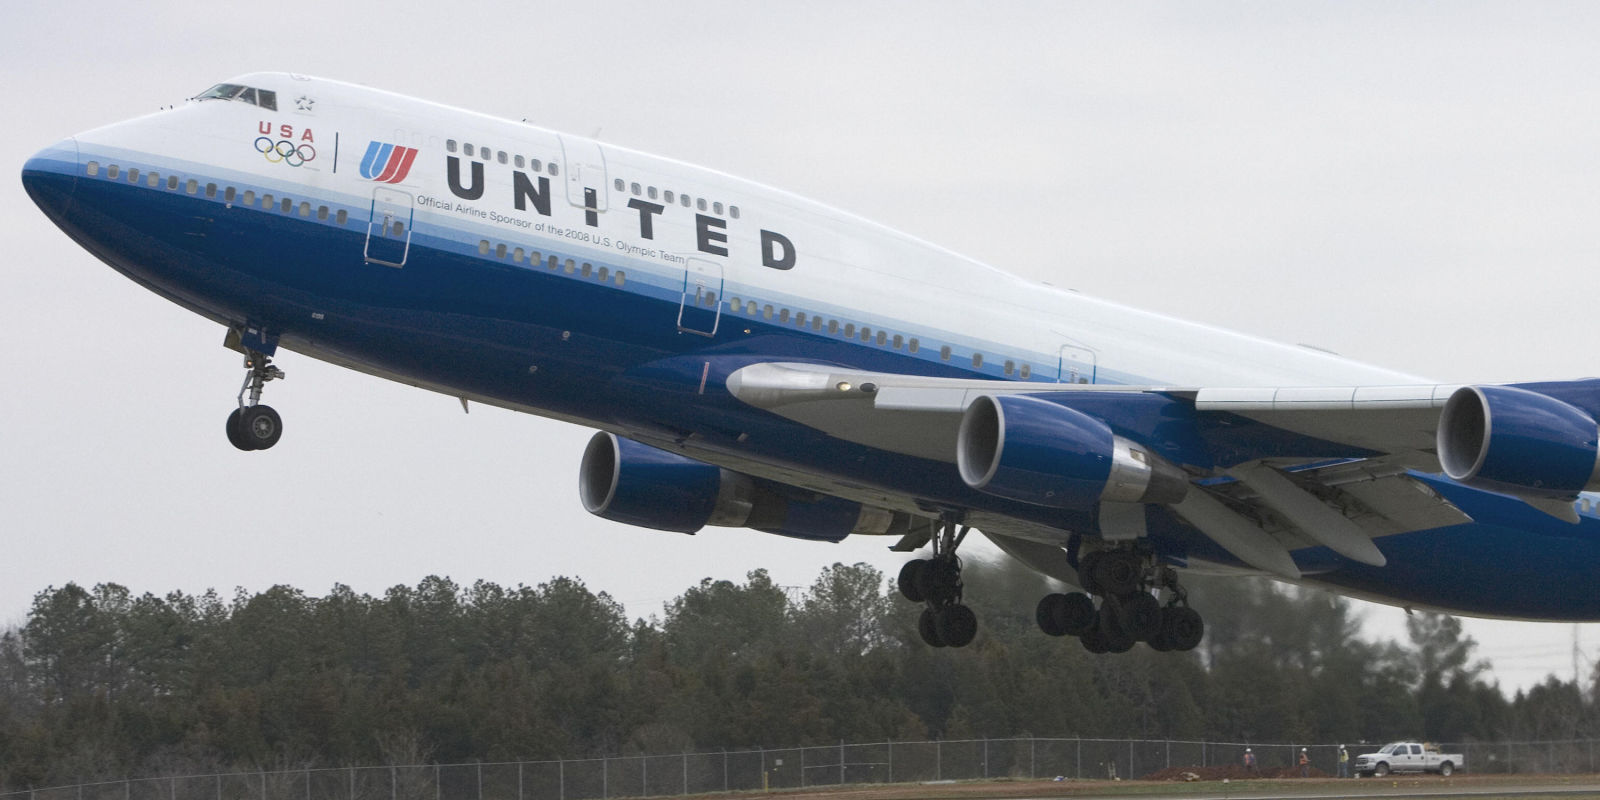 United Airlines revises policy - passenger removal